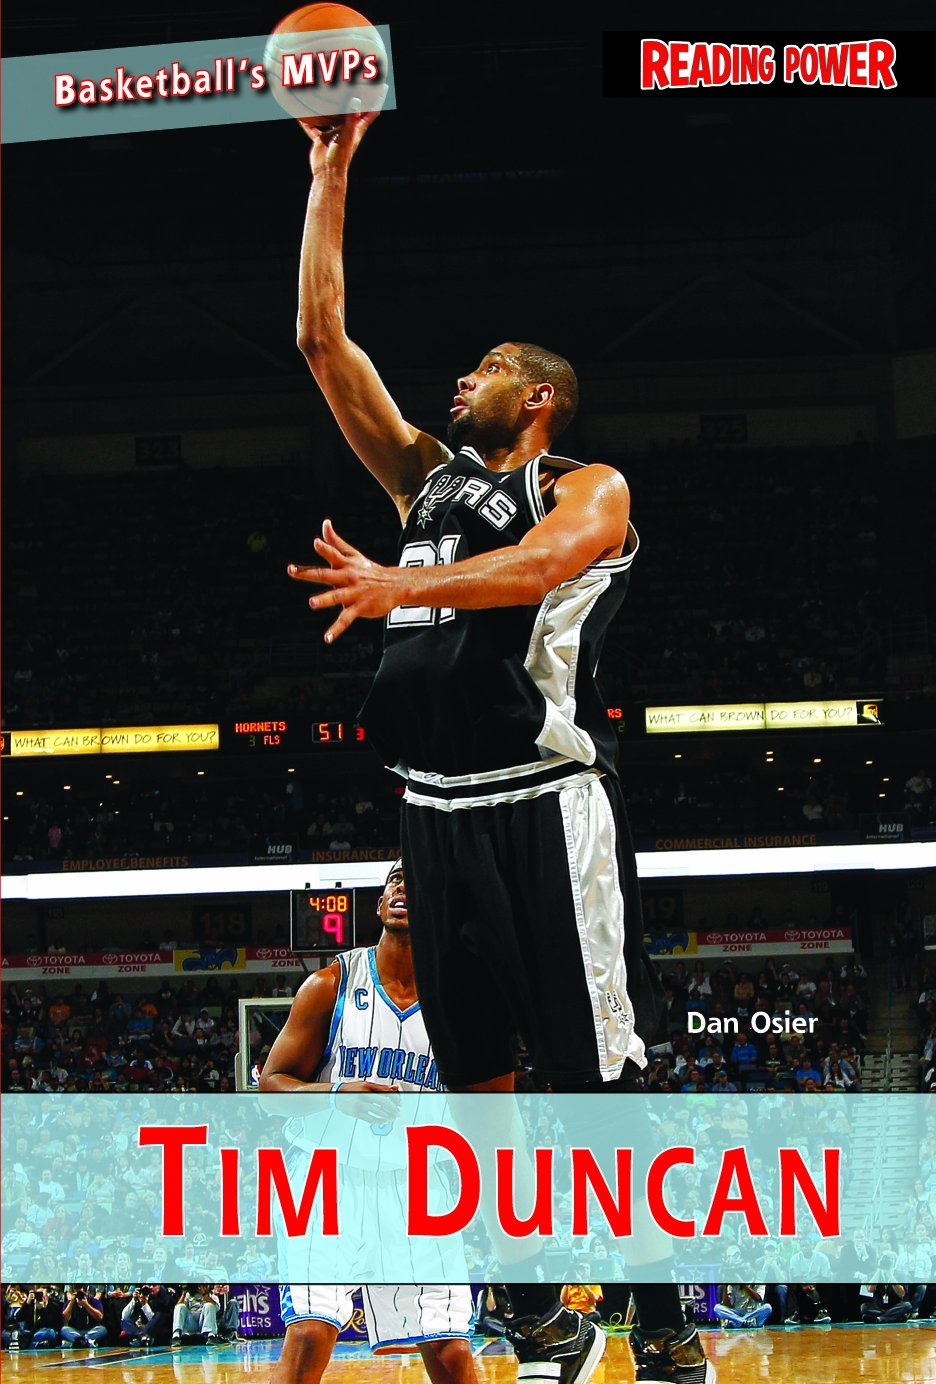 Tim Duncan (Basketball's MVPs)